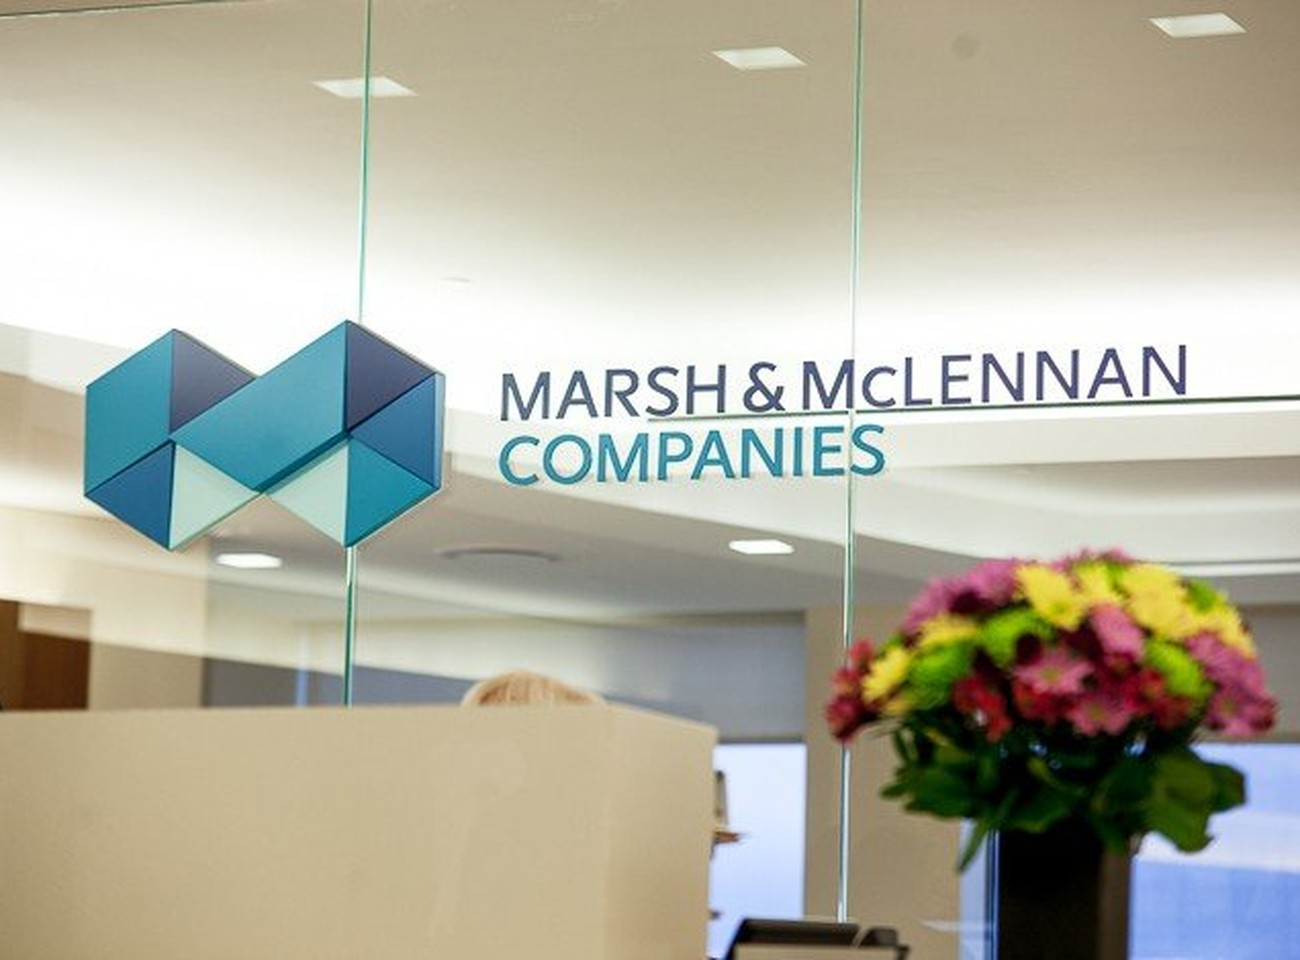 Marsh & McLennan Companies Careers